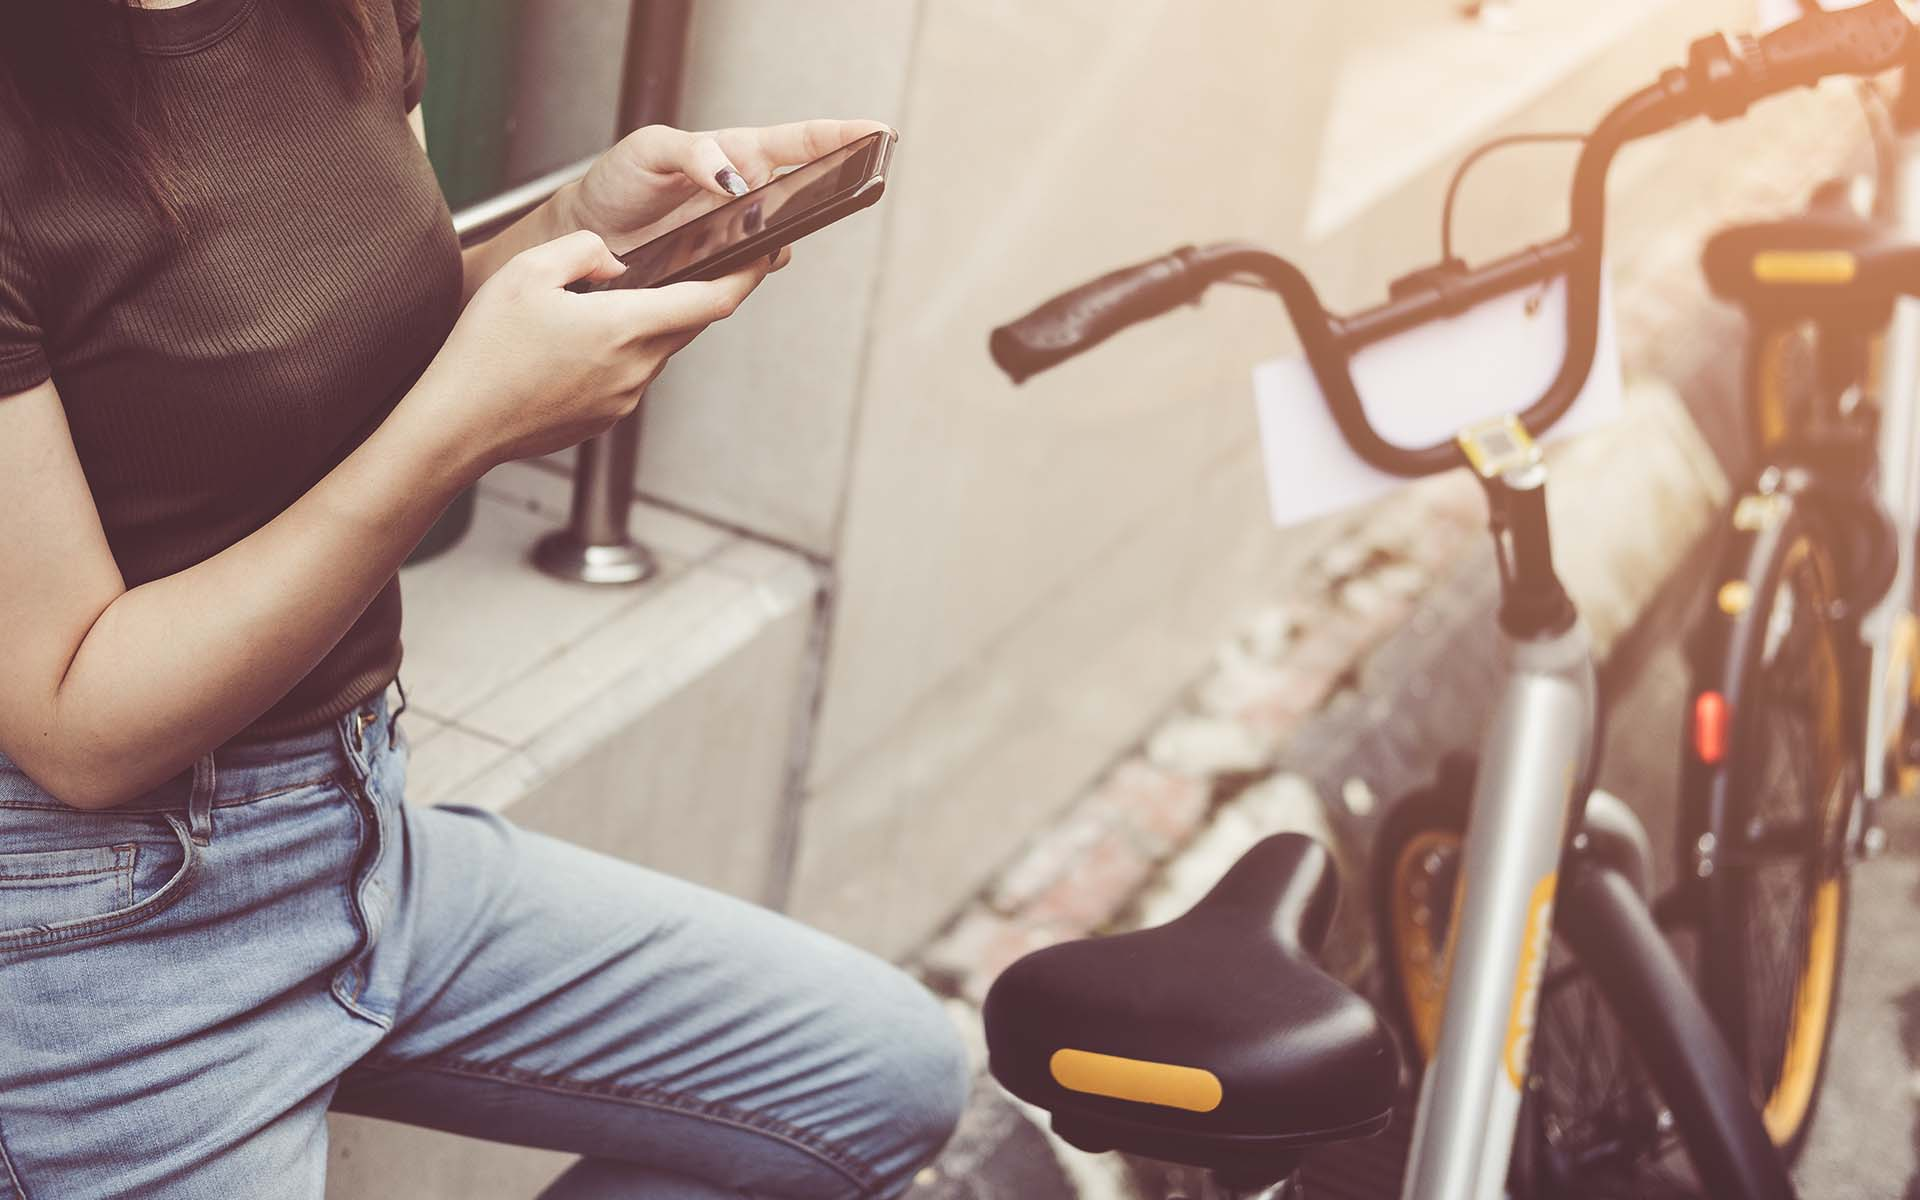 Two-Tired? Here's Some Free Crypto from Obike to Motivate You